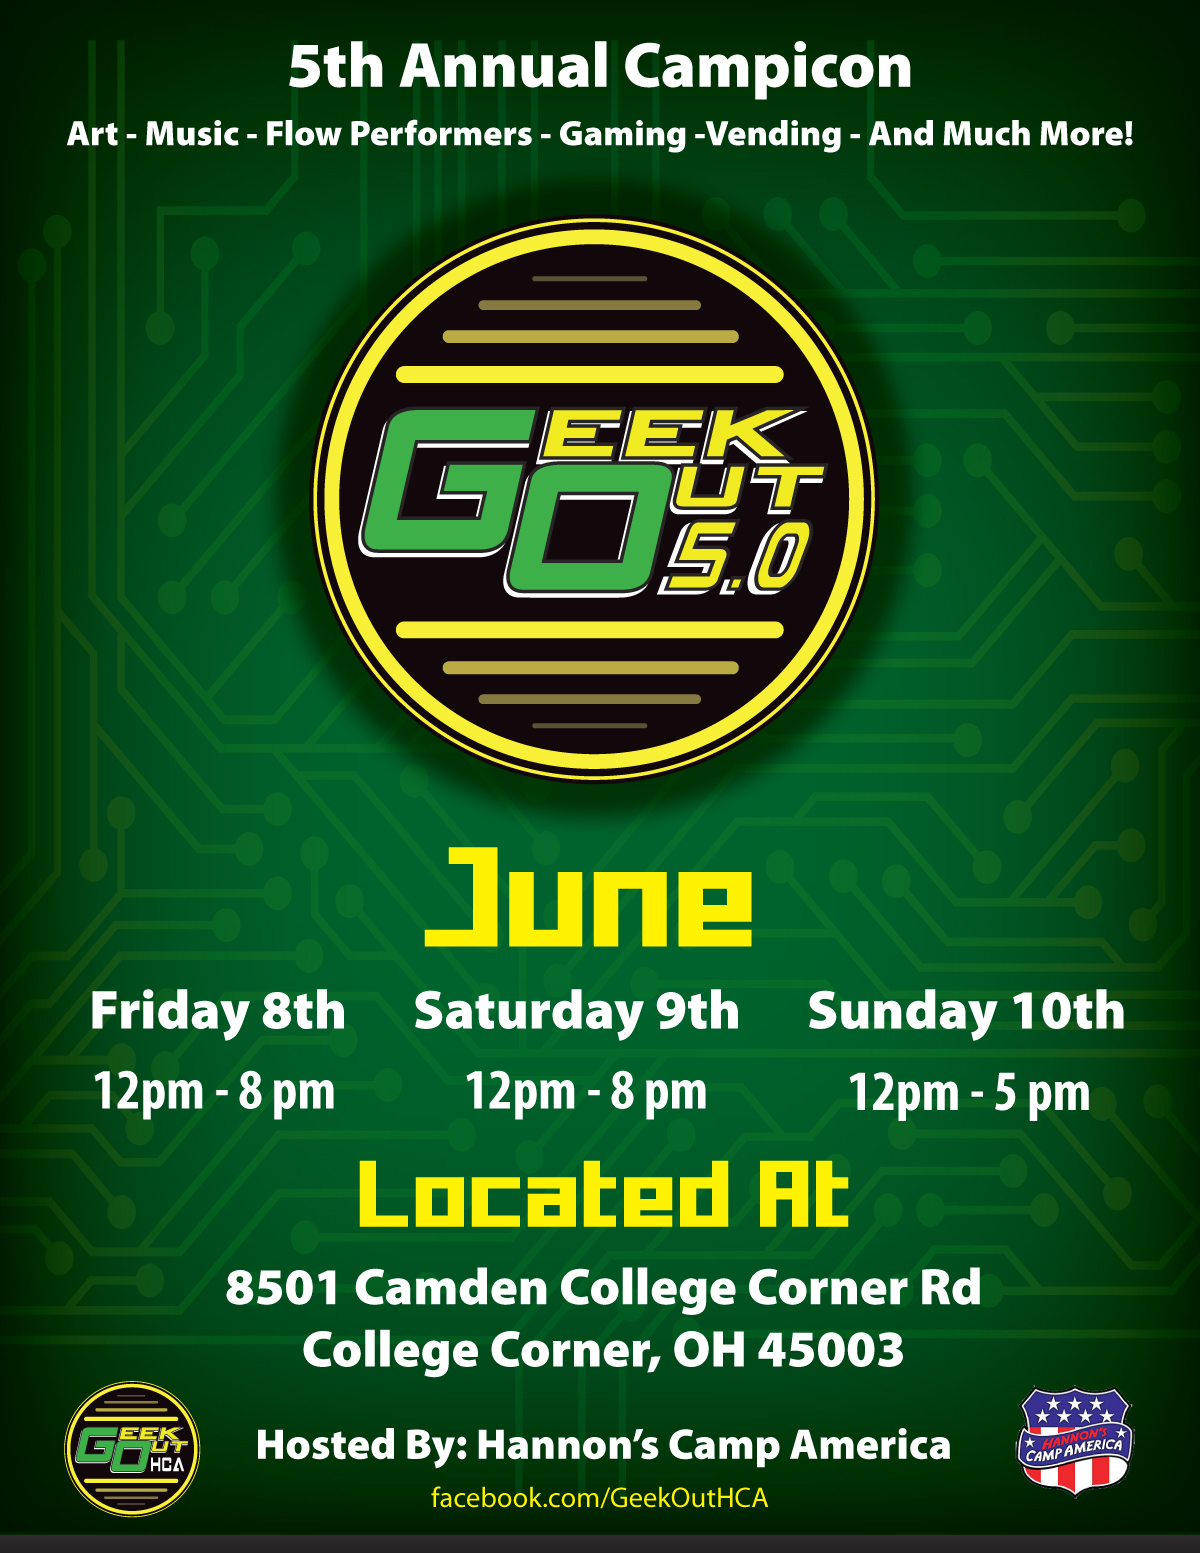 Geek Out 5.0 2018